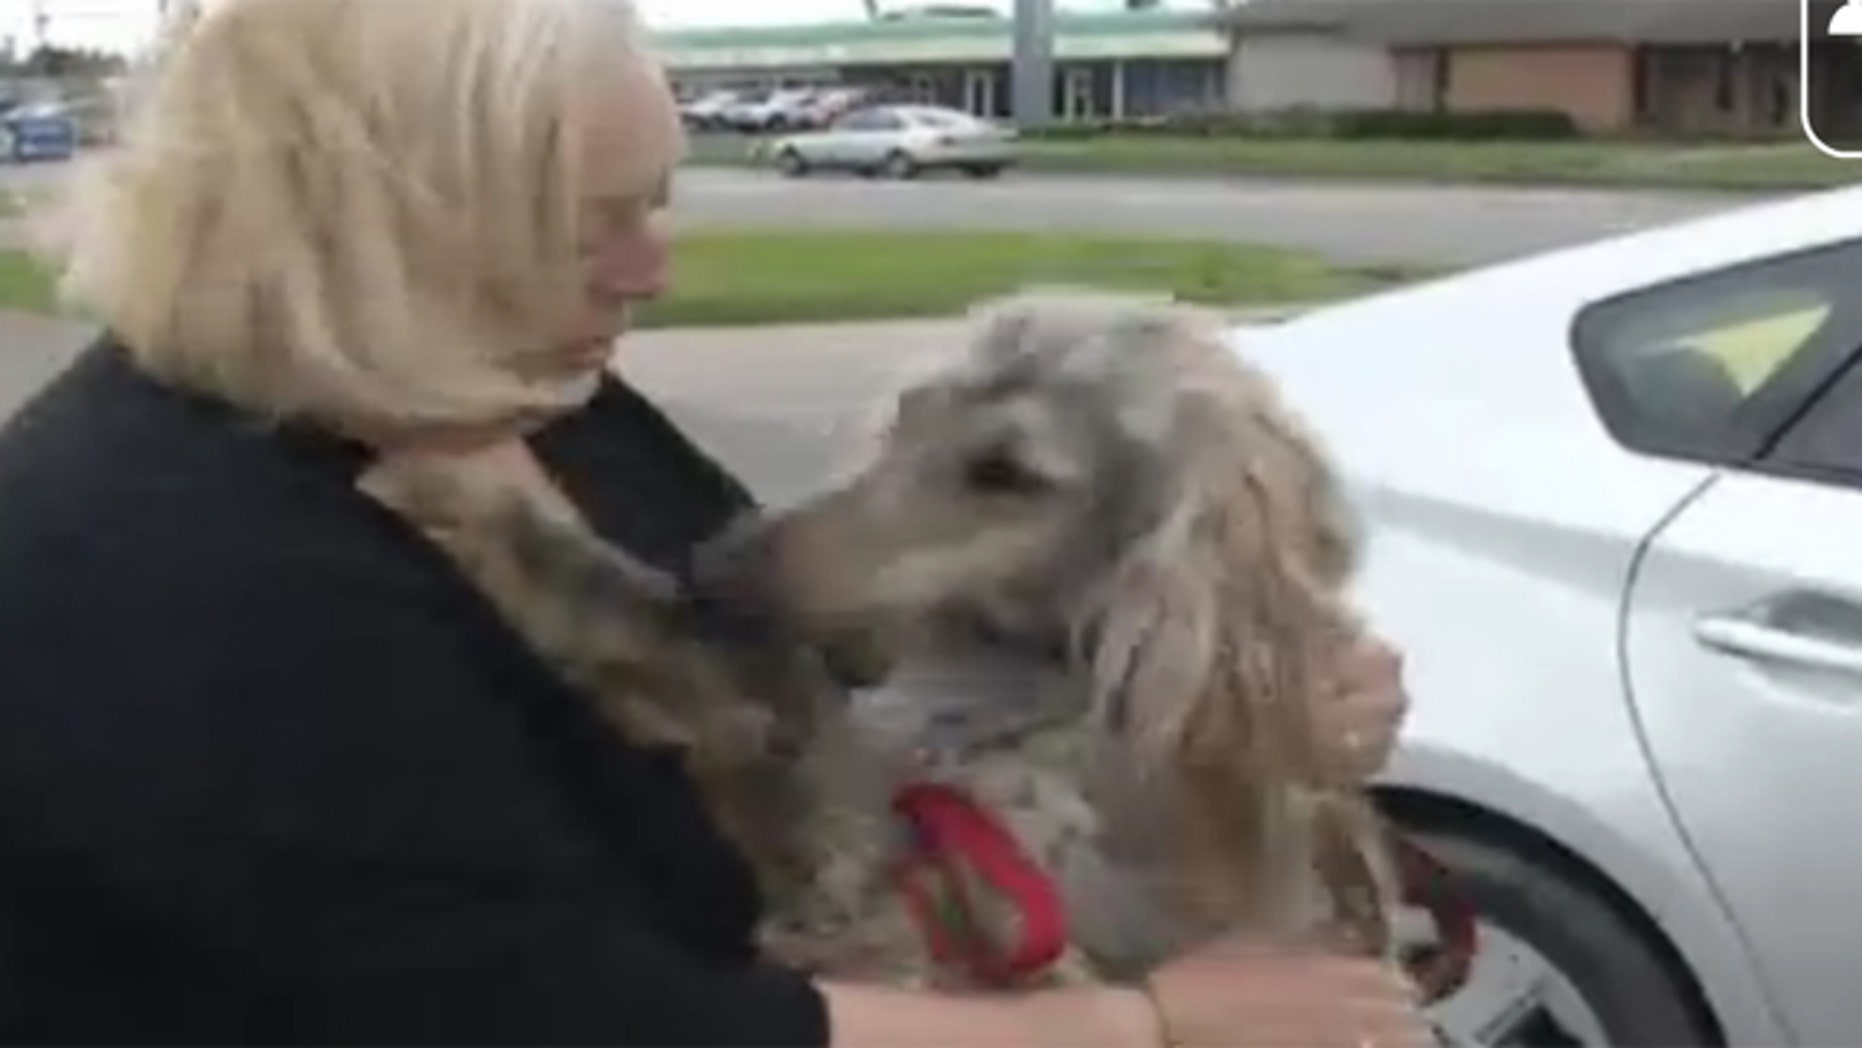 April 3, 2012: Jody Gardner plays with a dog the same breed as her missing dog, Flower.